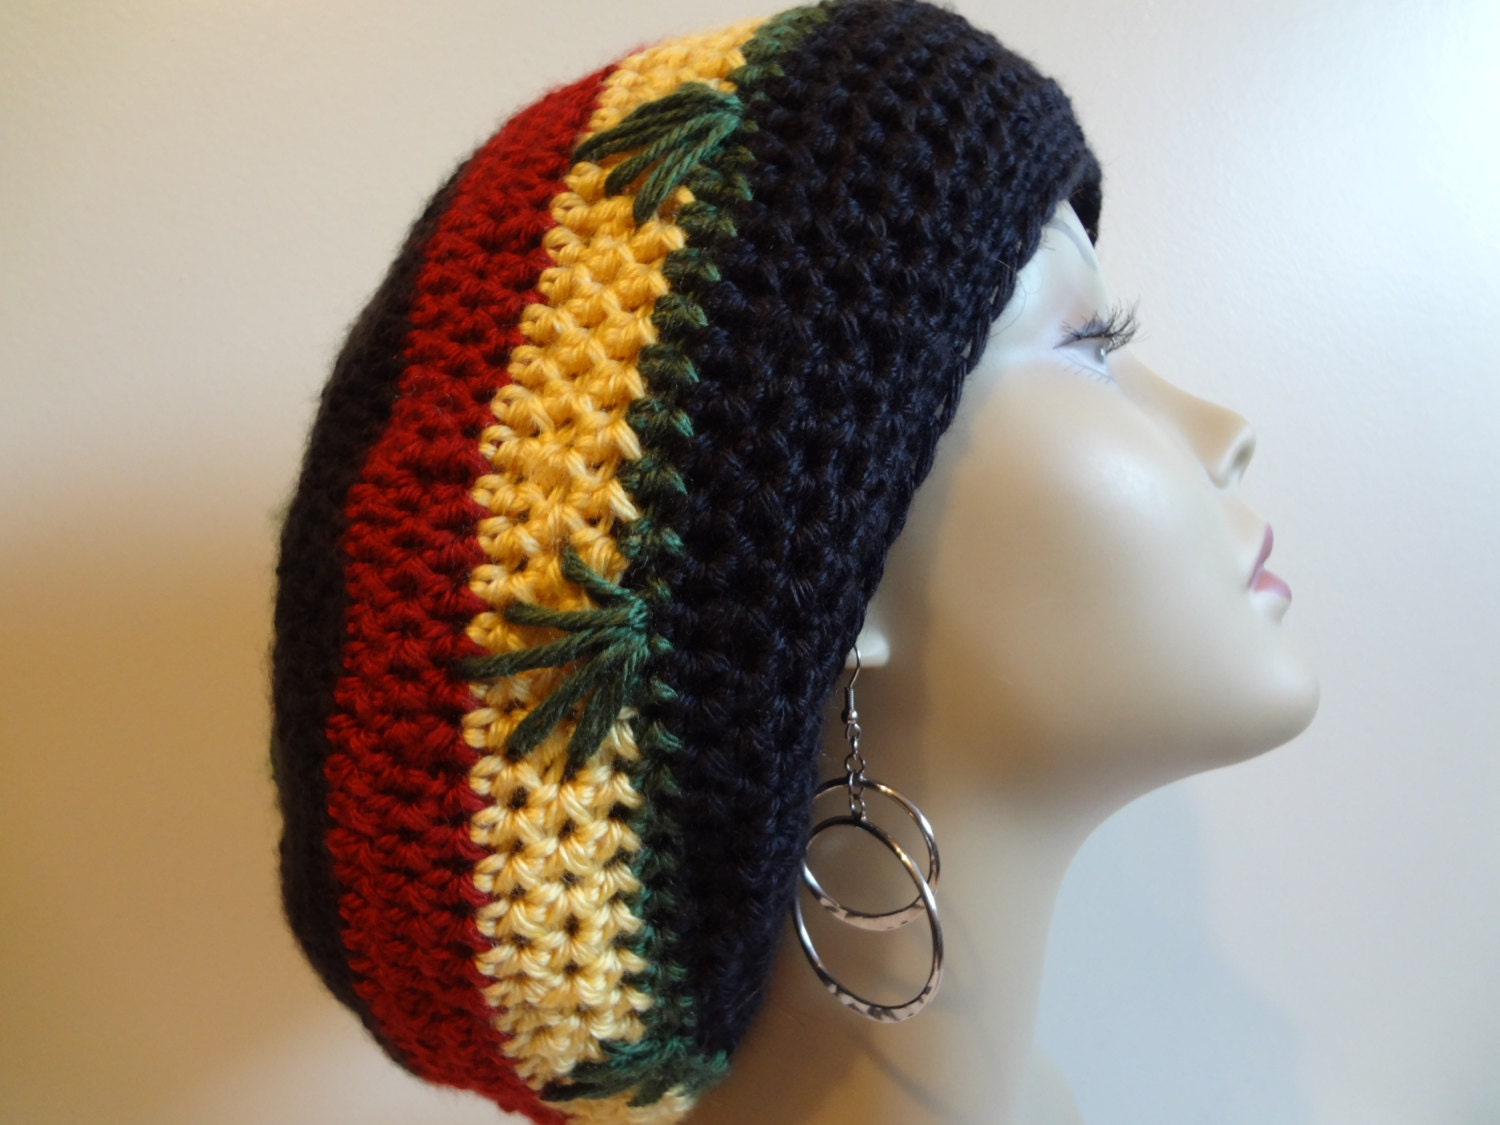 Crochet Rasta Hat With Brim Pattern images